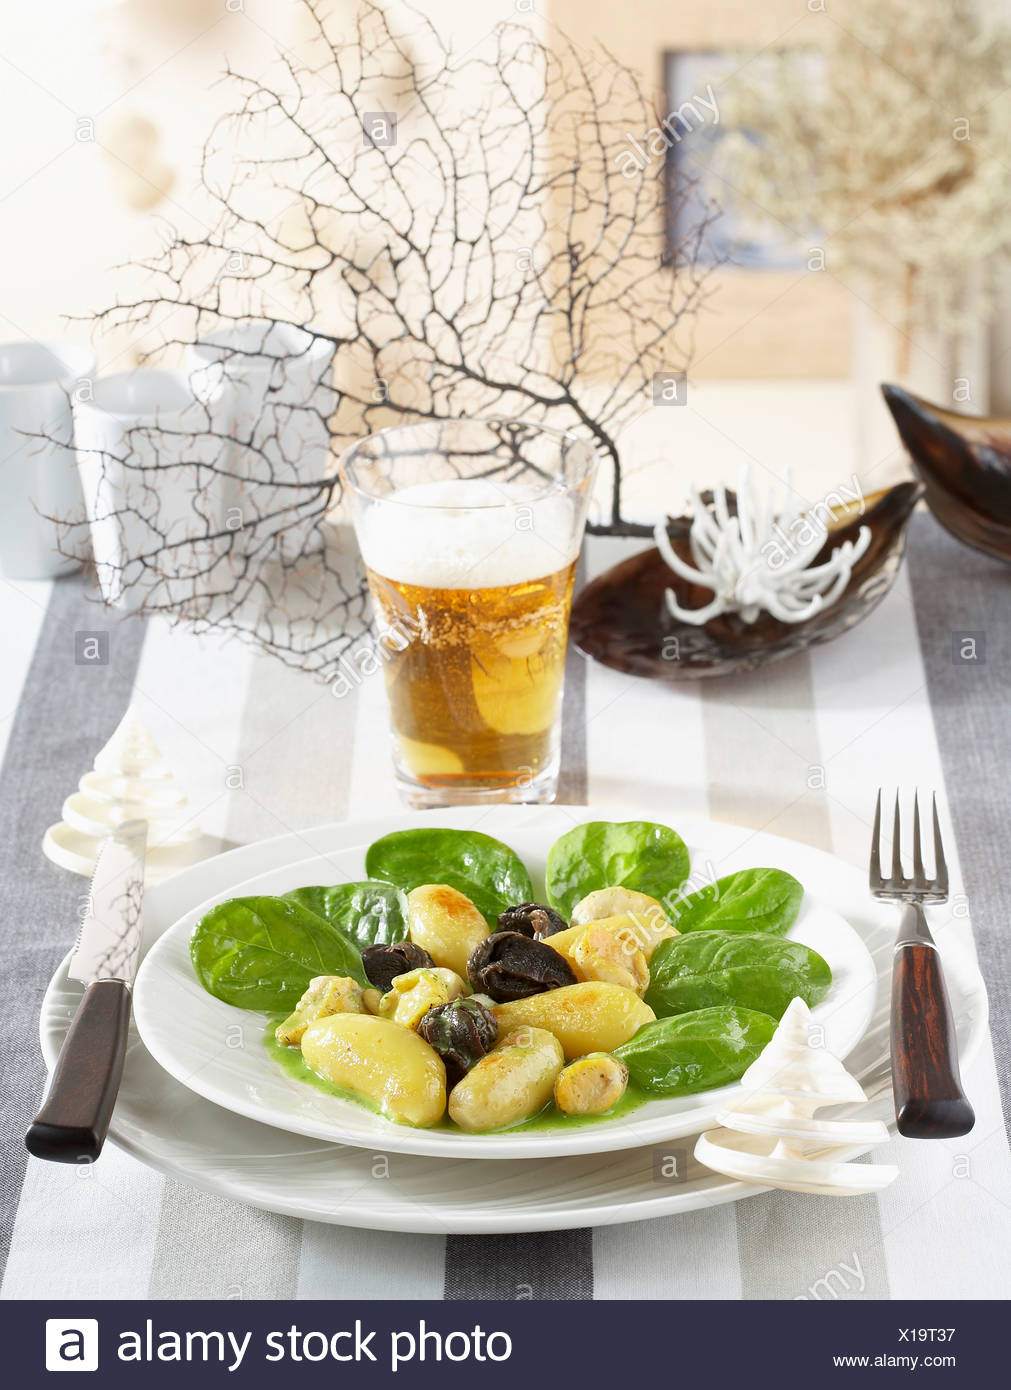 Touquet Ratte potatoes with whelks,snails and spinach shoots Stock Photo